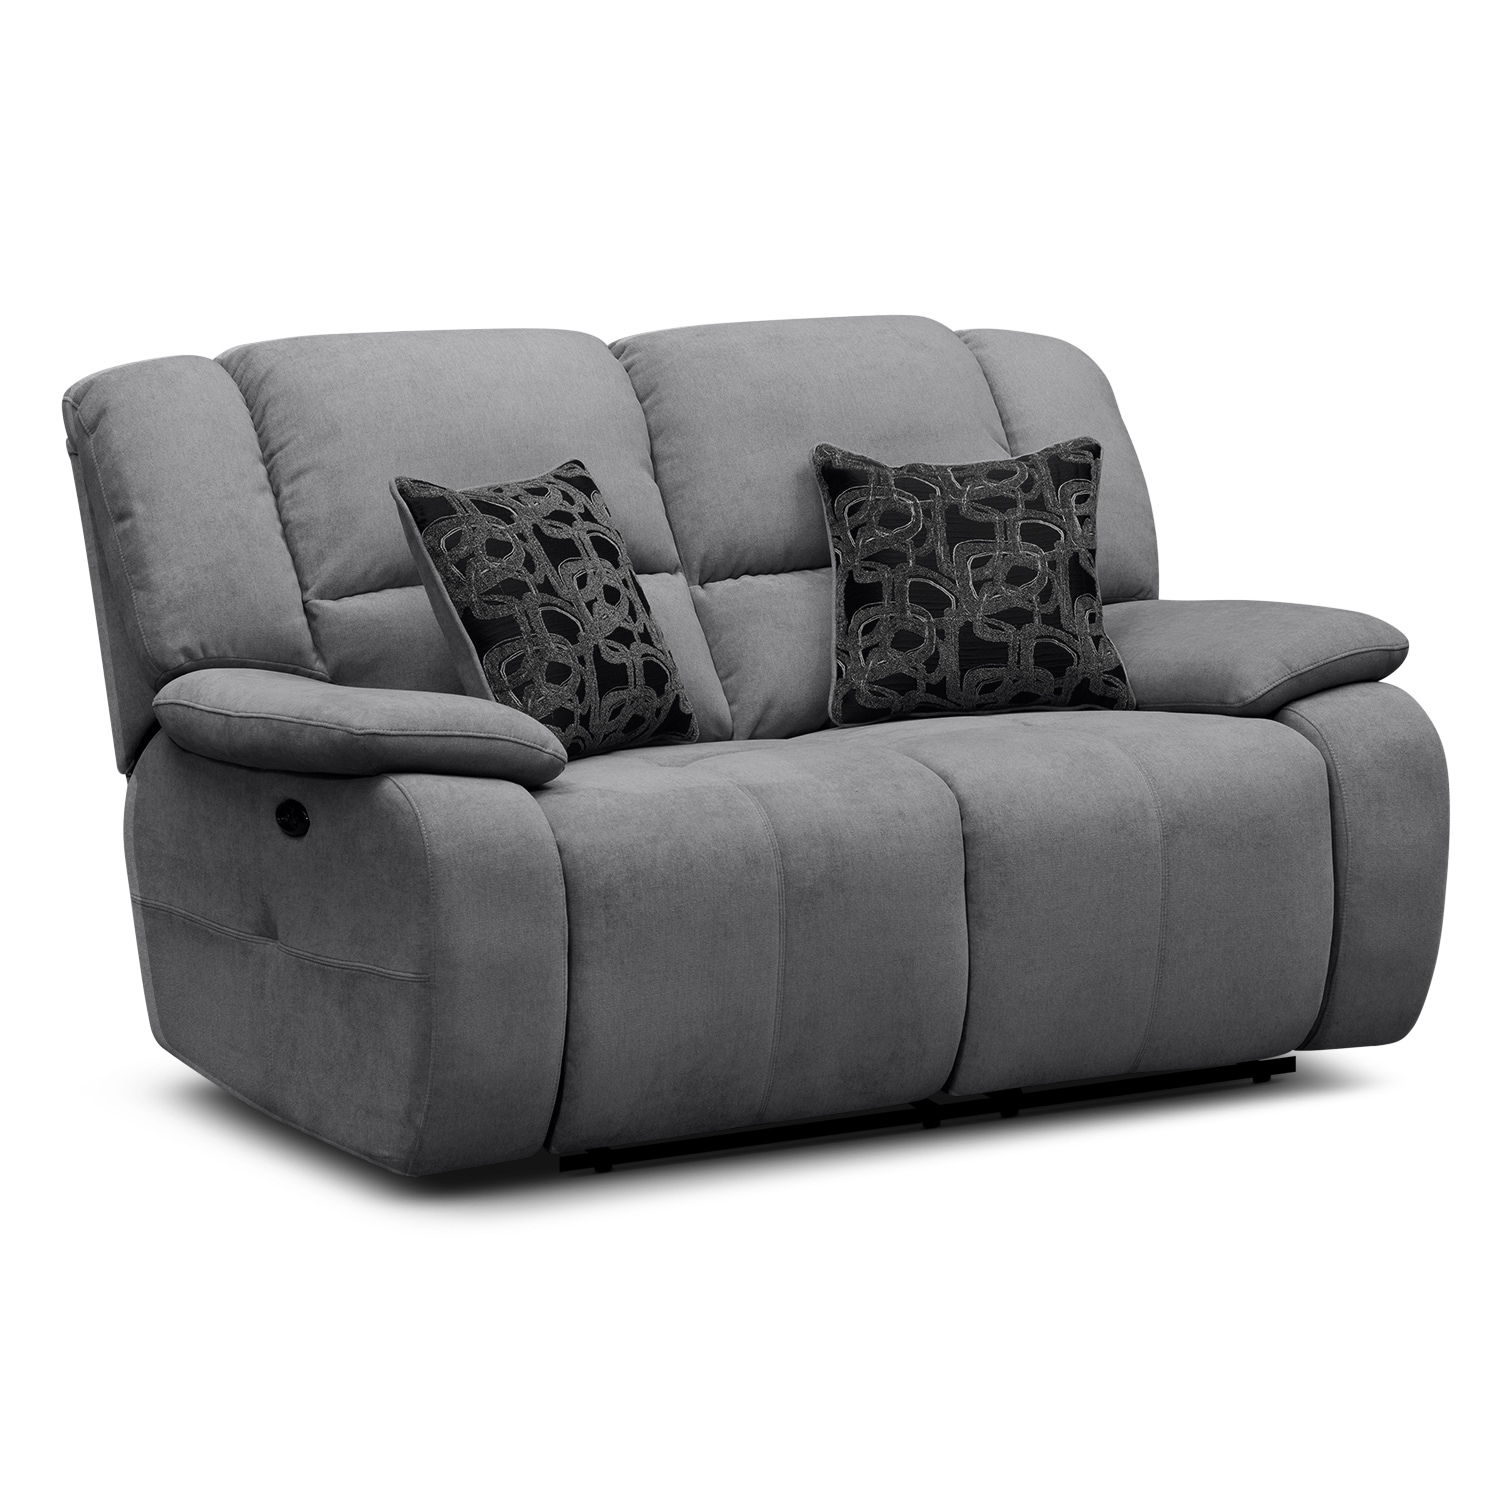 Destin gray upholstery power reclining loveseat value city furniture Power loveseat recliner